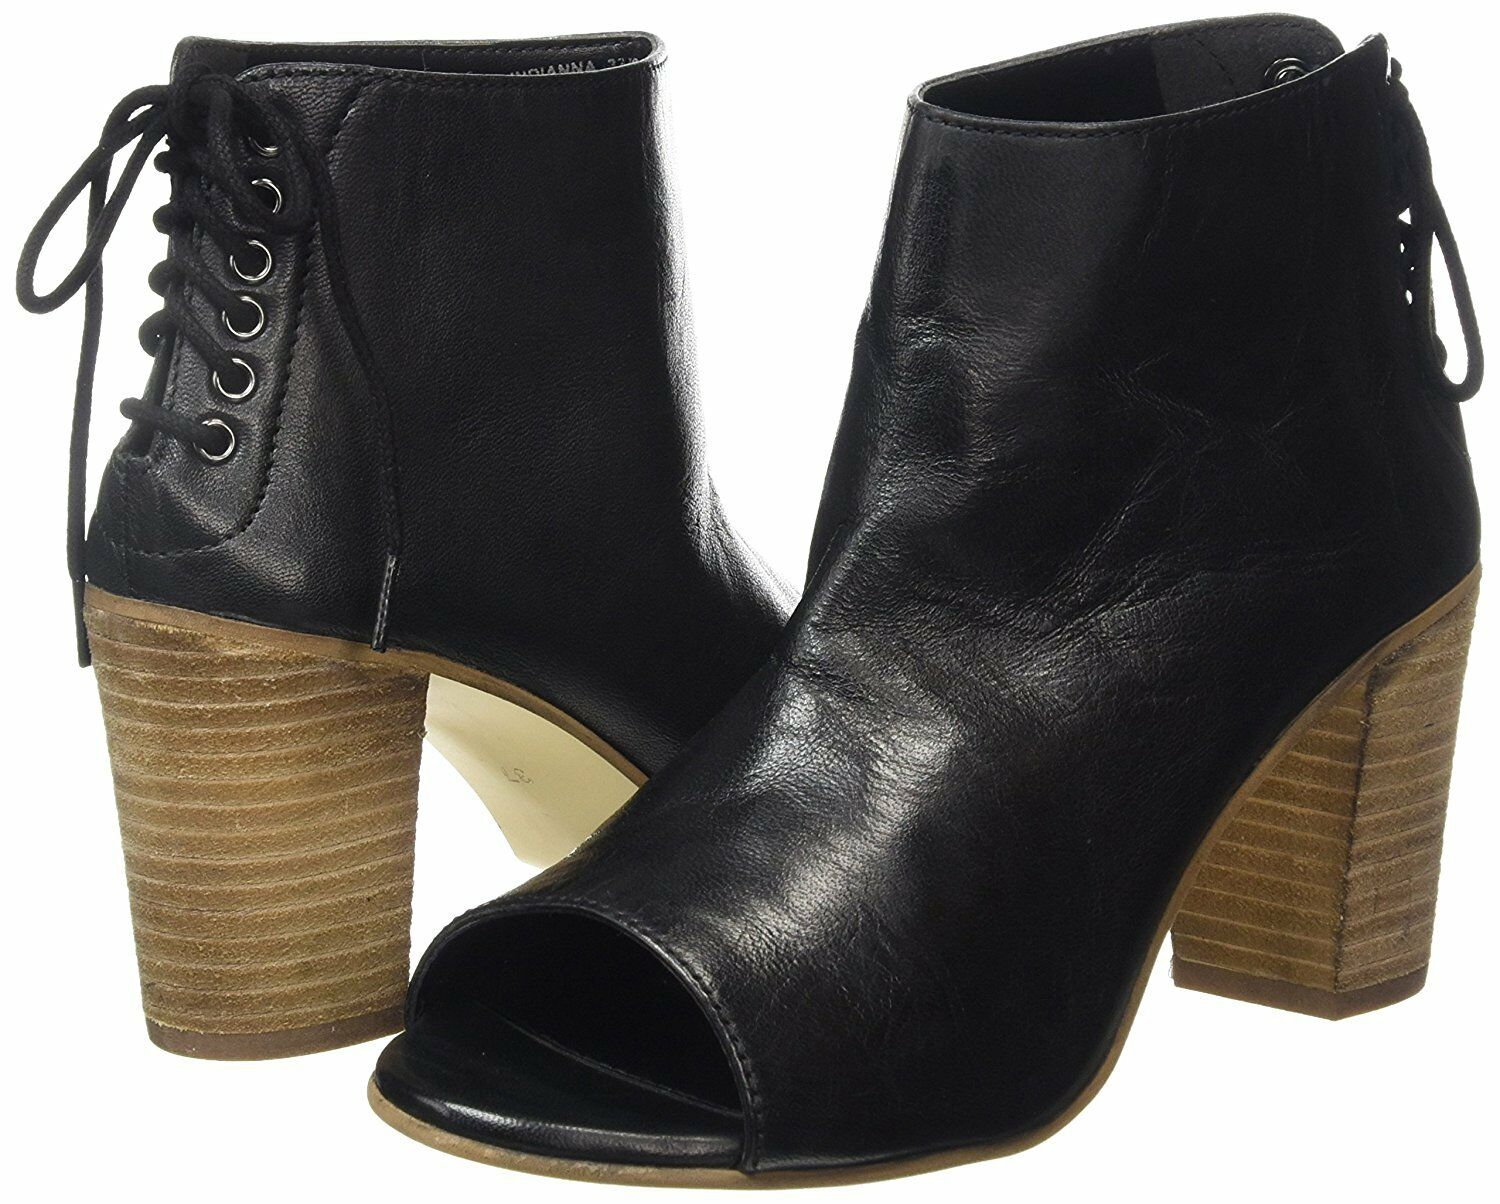 DUNE INDIANNA SIZE 3 MID 36 BLACK REAL LEATHER MID 3 HEEL ANKLE SHOE Stiefel  BNWB 812912